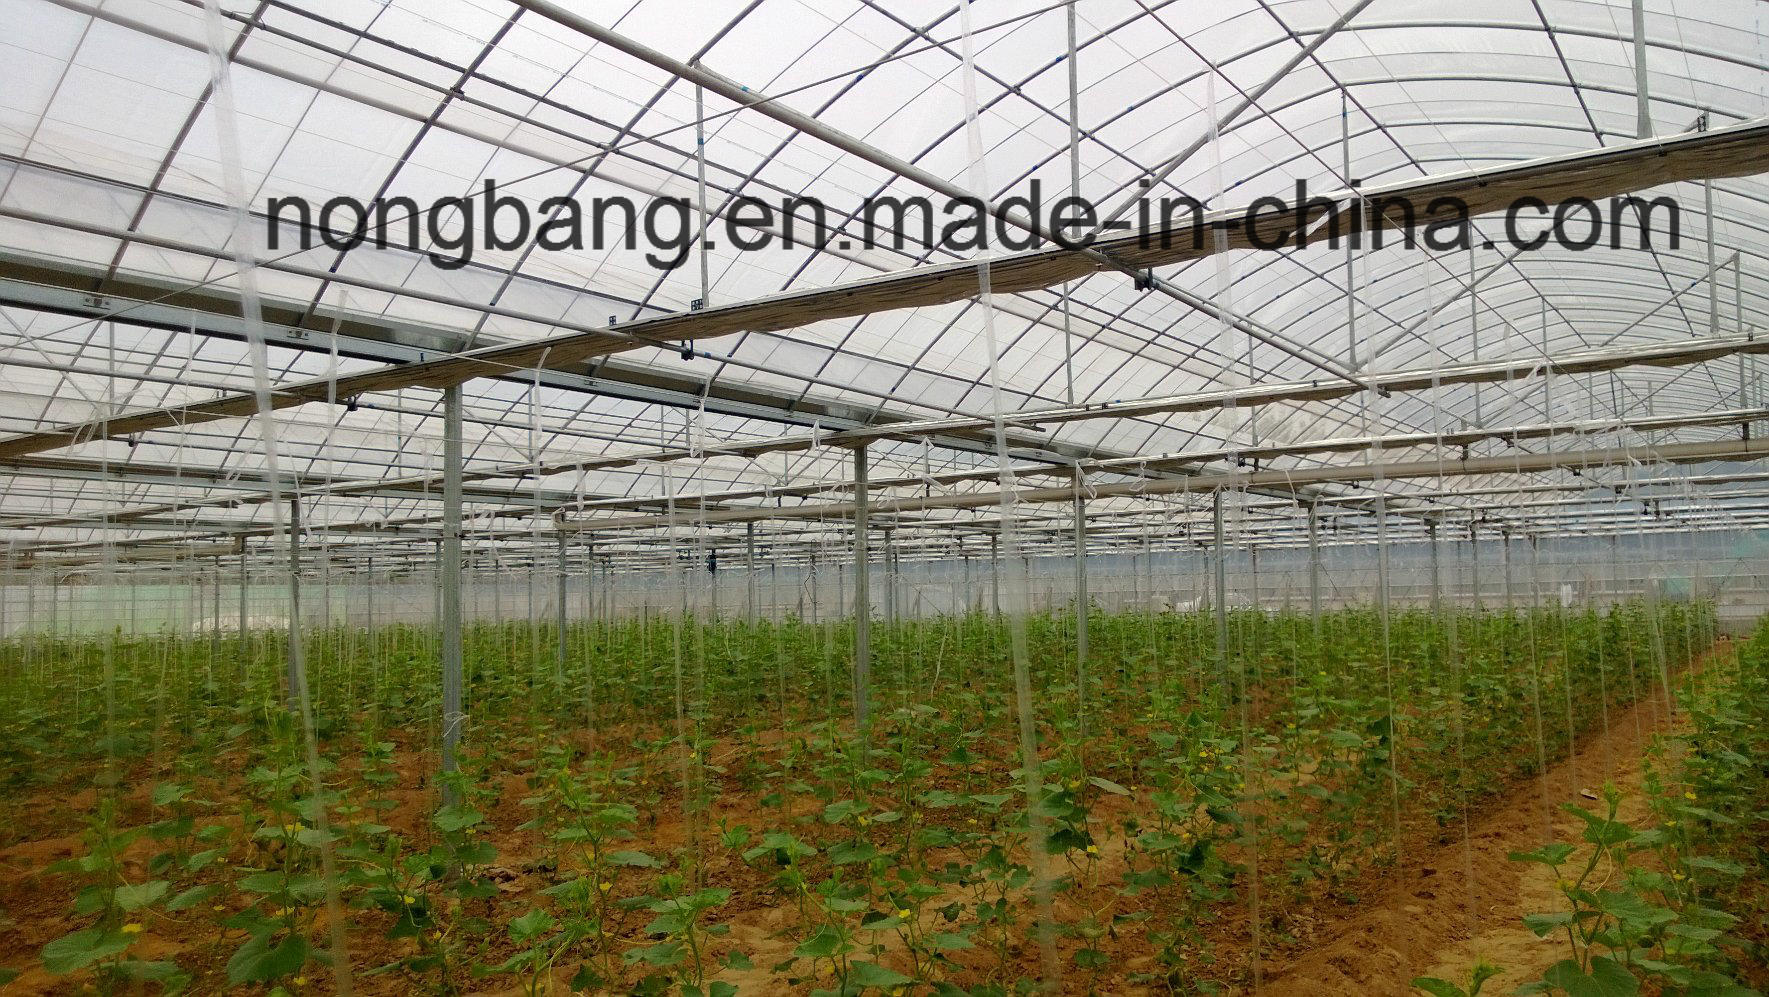 The Cheapest China XL Agricultural, Commercial Plastic Greenhouse